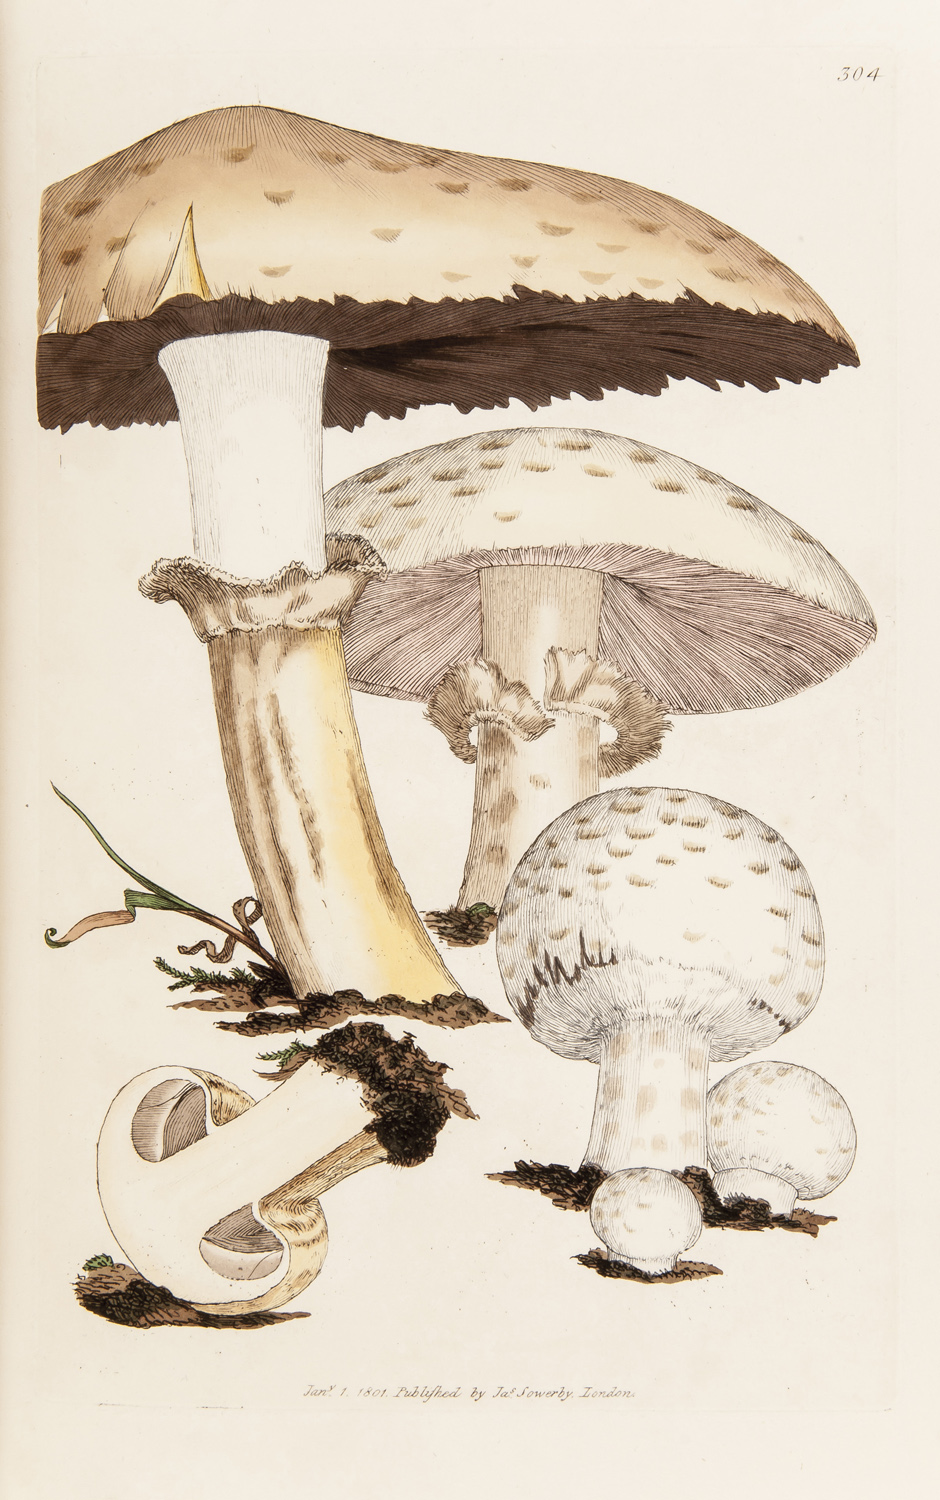 SOWERBY, James. Coloured Figures Of English Fungi Or Mushrooms